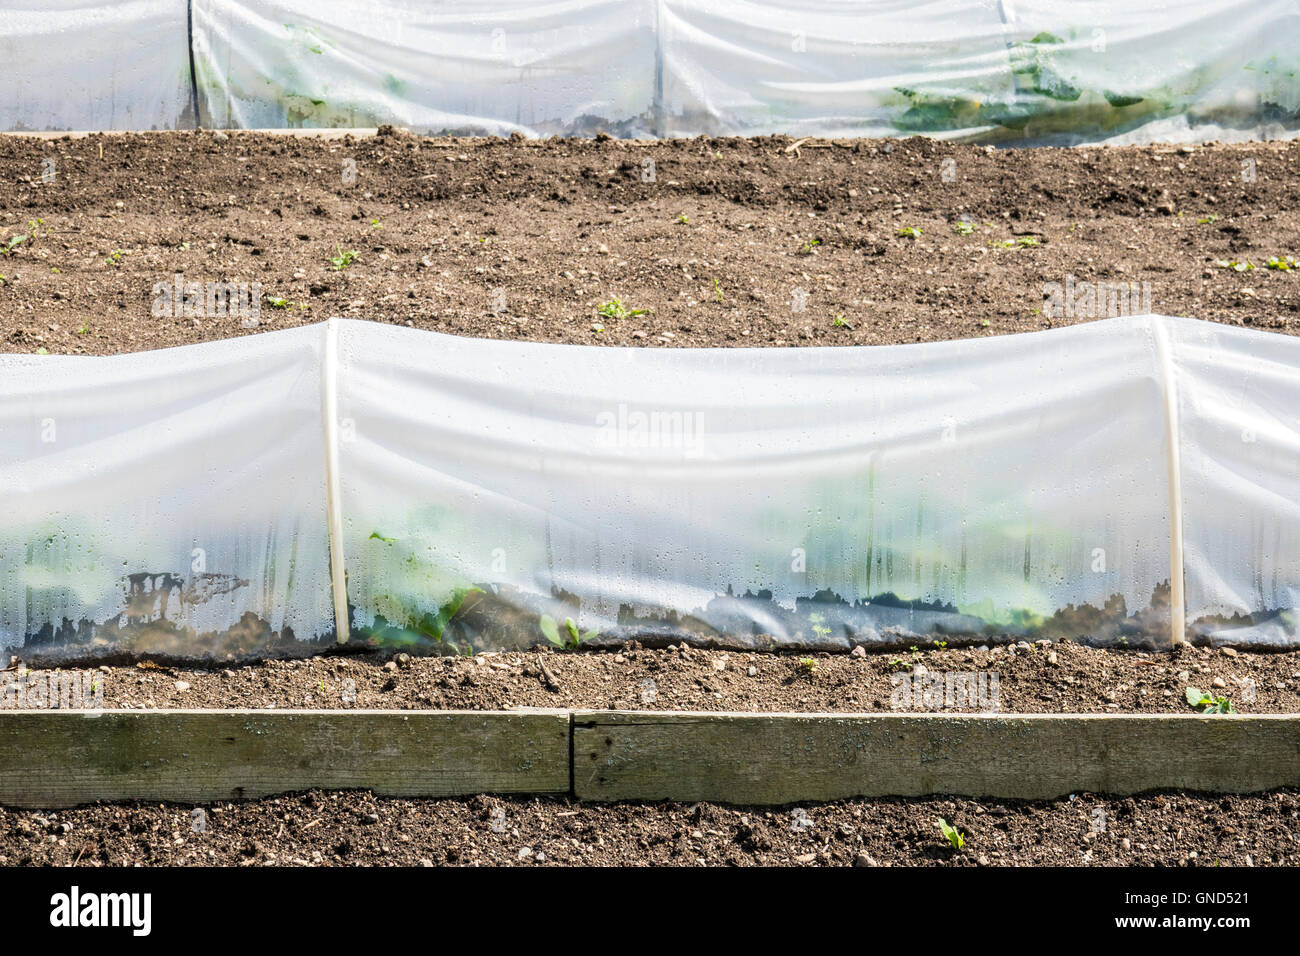 Garden Covers For Vegetables Part - 39: Growing Vegetables With Plastic Cover As Protection In Garden. Concept Of  Gardening, Plant Cultivation